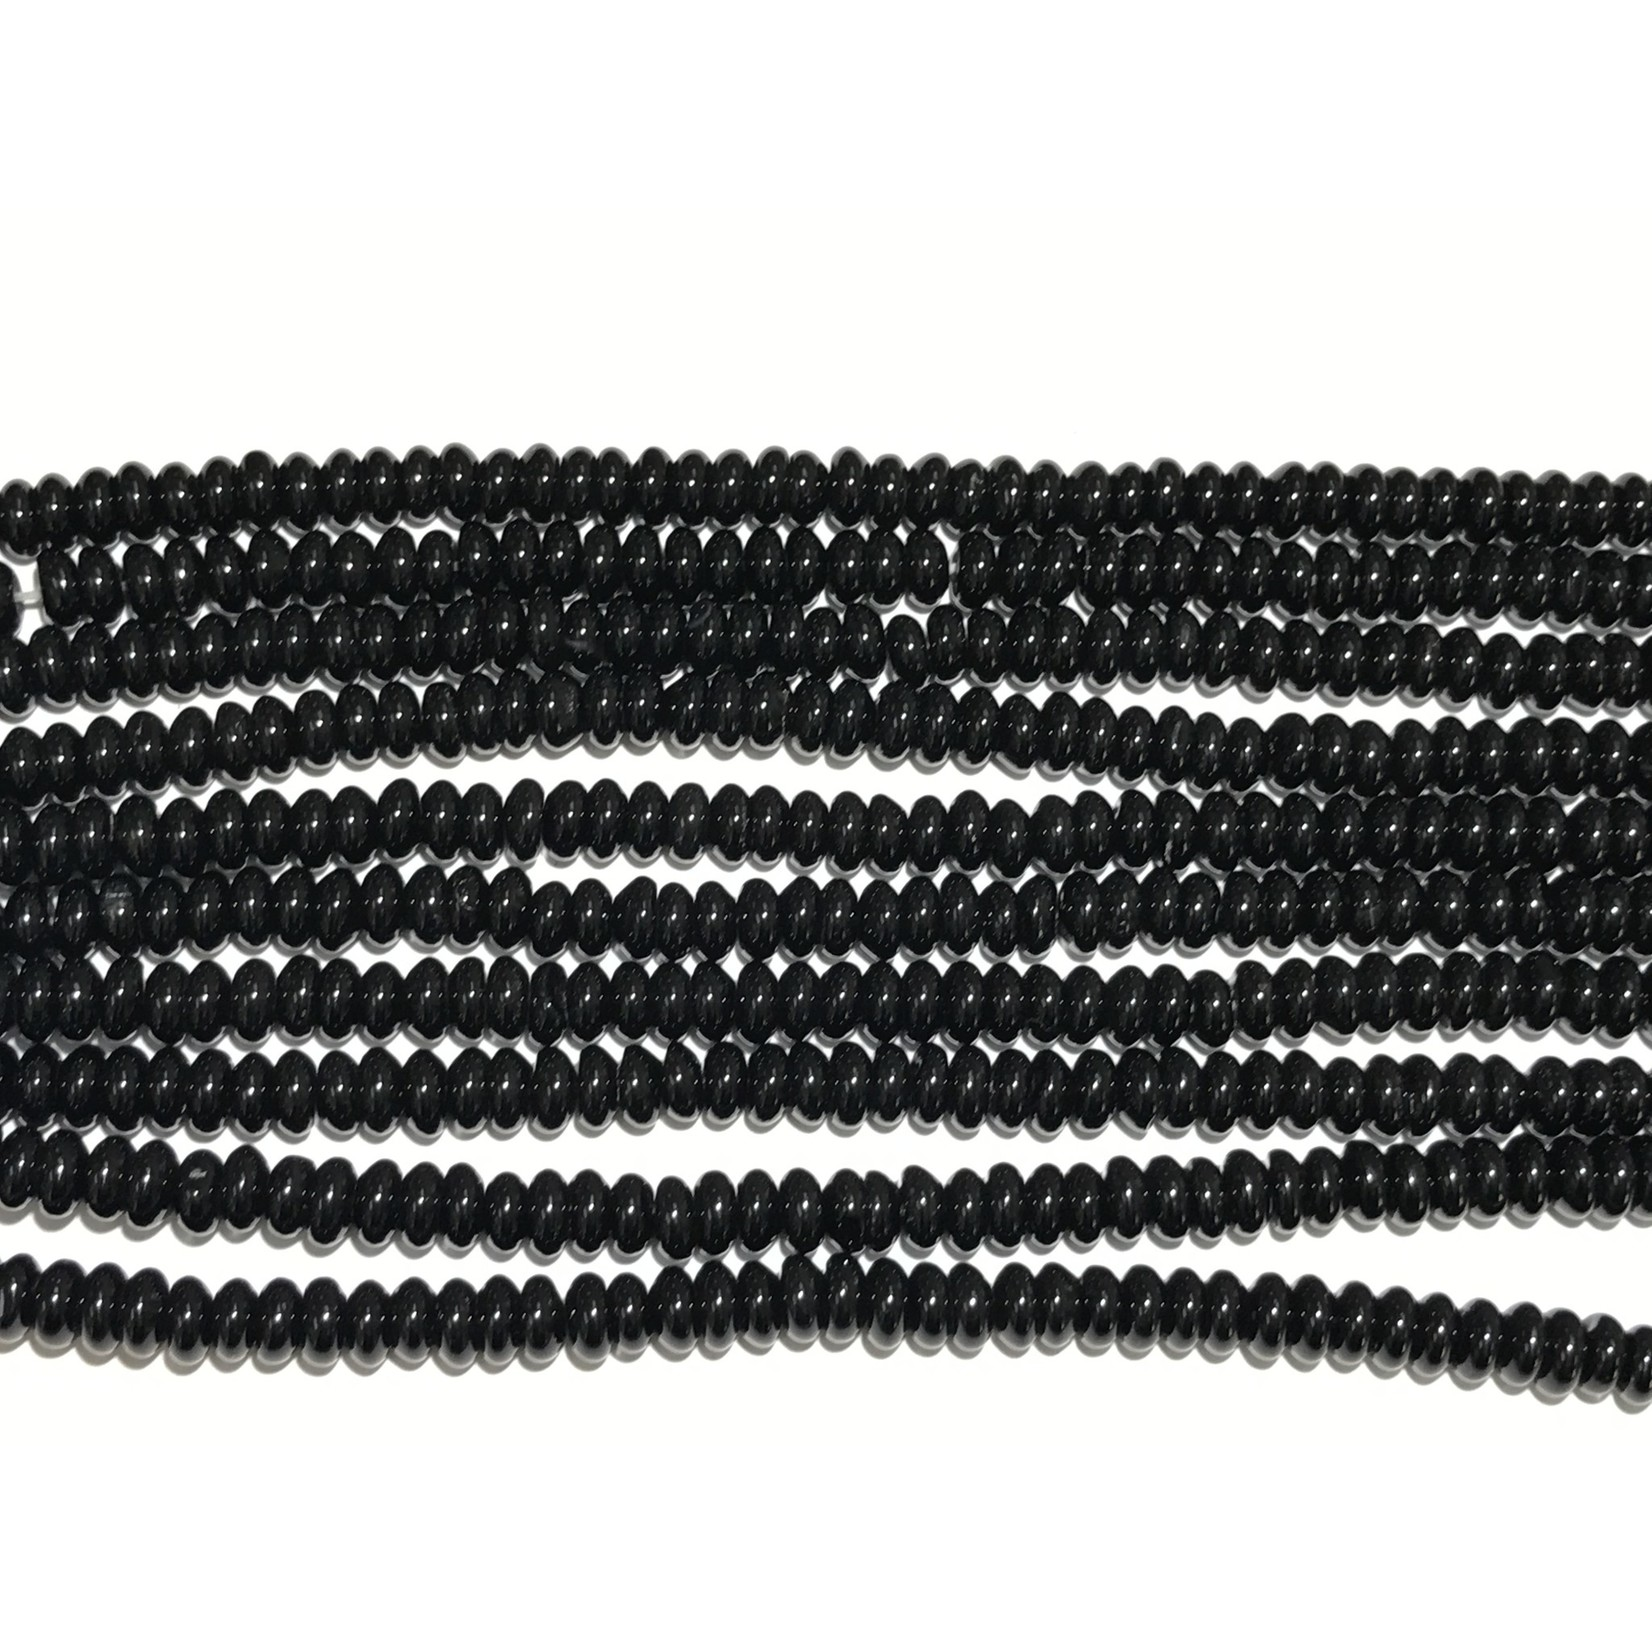 Black Agate Abacus/Rondelle Beads 6 X 3mm